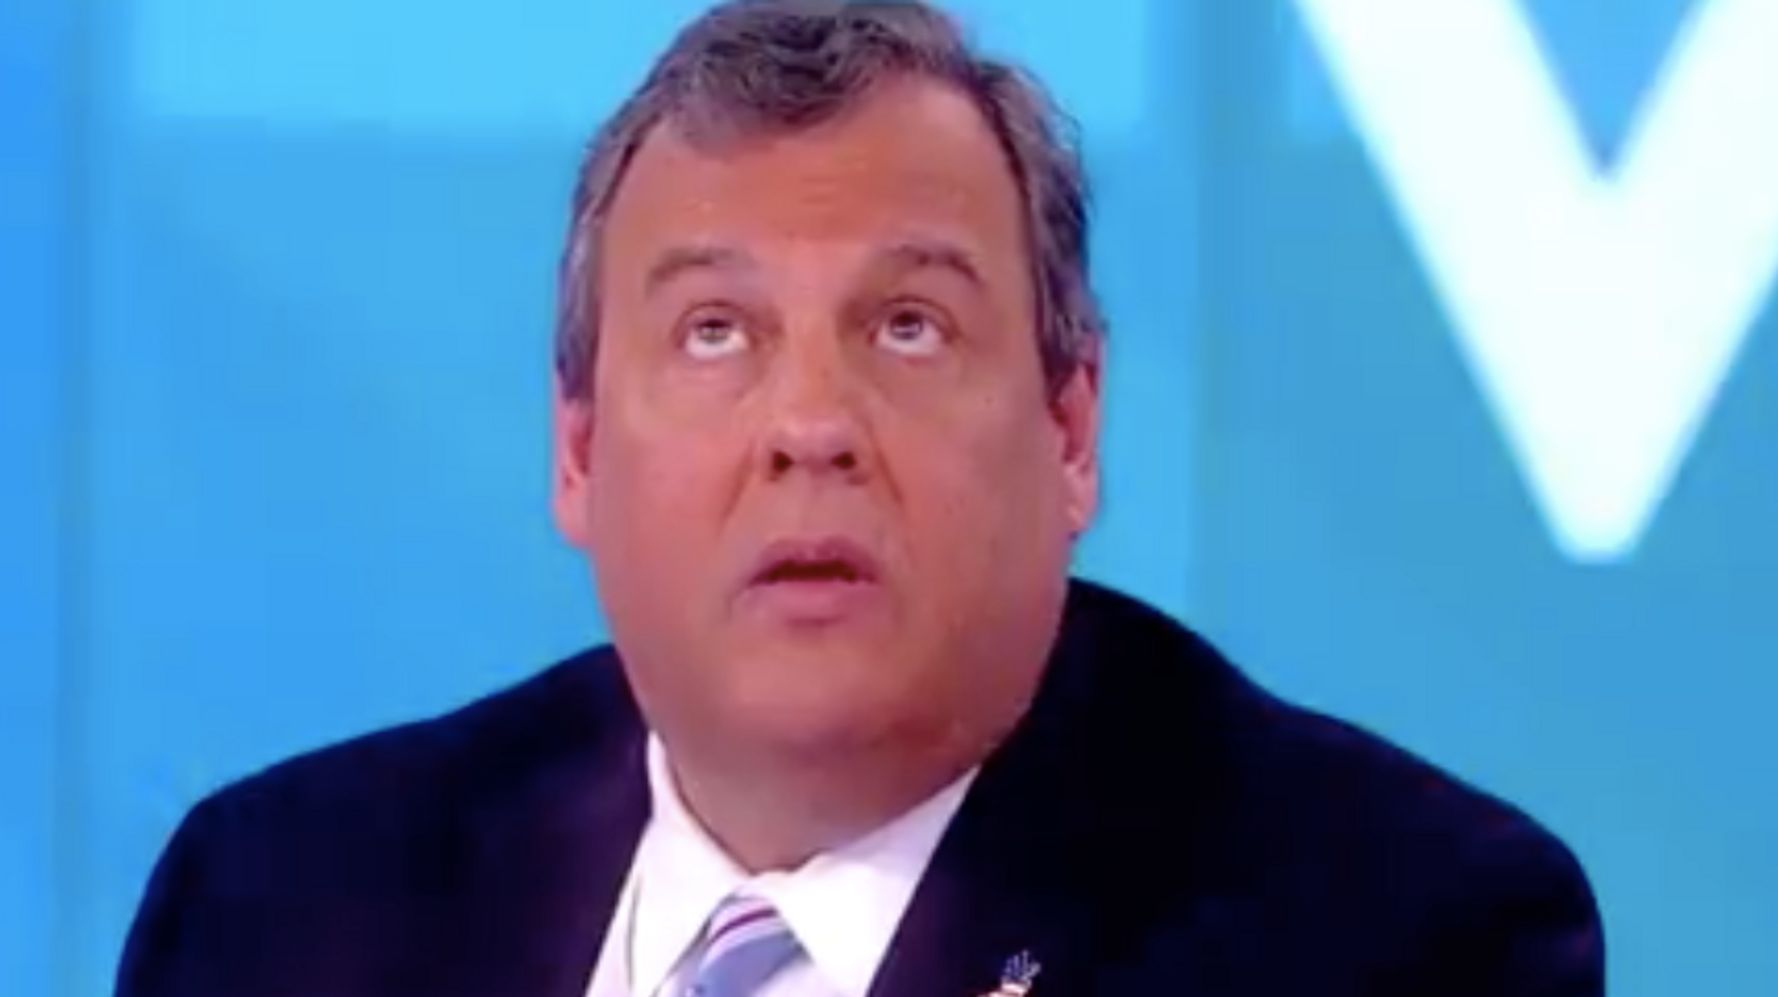 'The View' Host Sunny Hostin Confronts Chris Christie With Blunt Trump Question